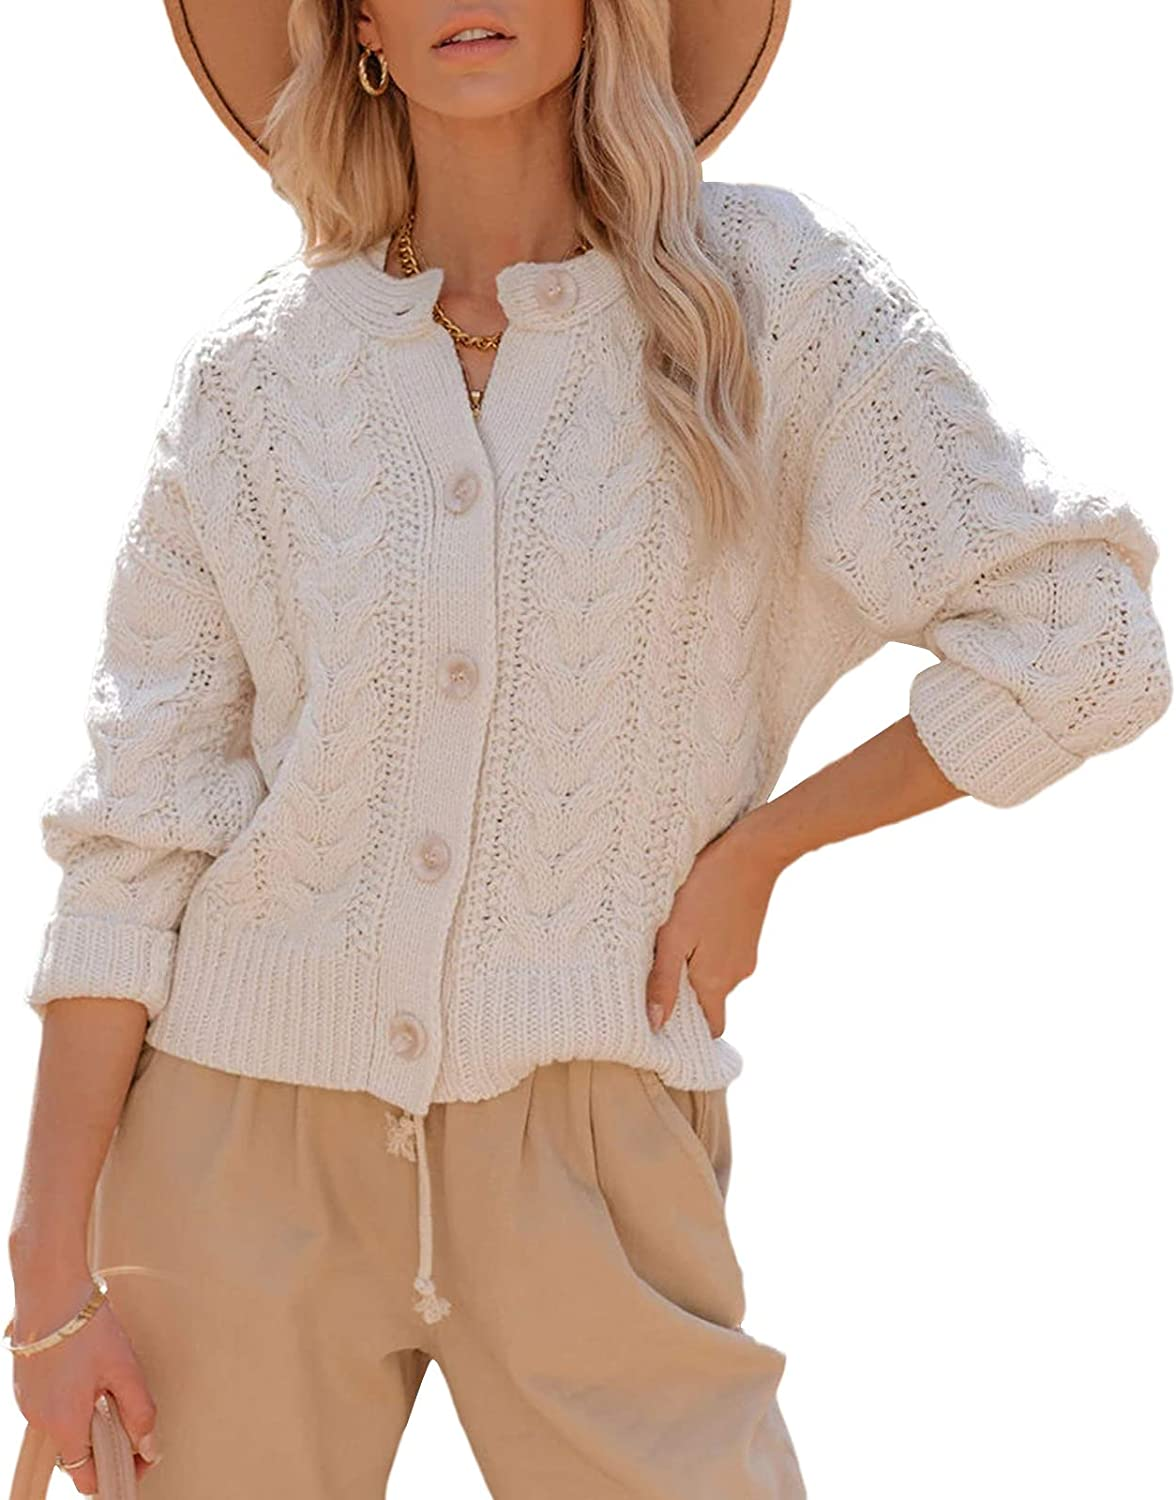 Ybenlow Womens Long Sleeve Open Front Cardigan Sweaters Cable Knit Loose Lightweight Button Down Cardigans Outwear